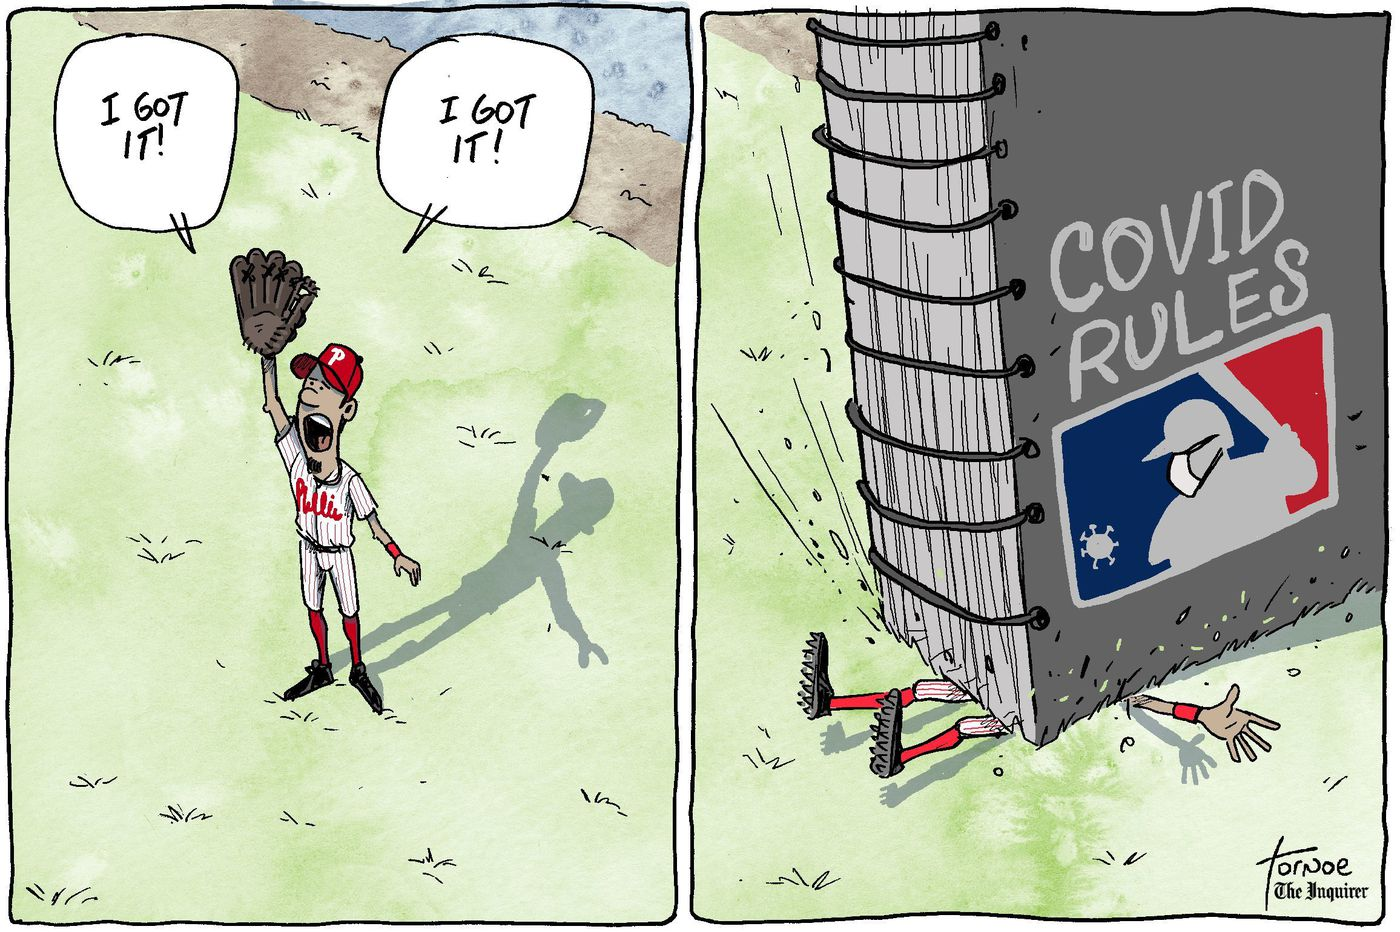 Cartoon: MLB missing an opportunity with its massive coronavirus rulebook